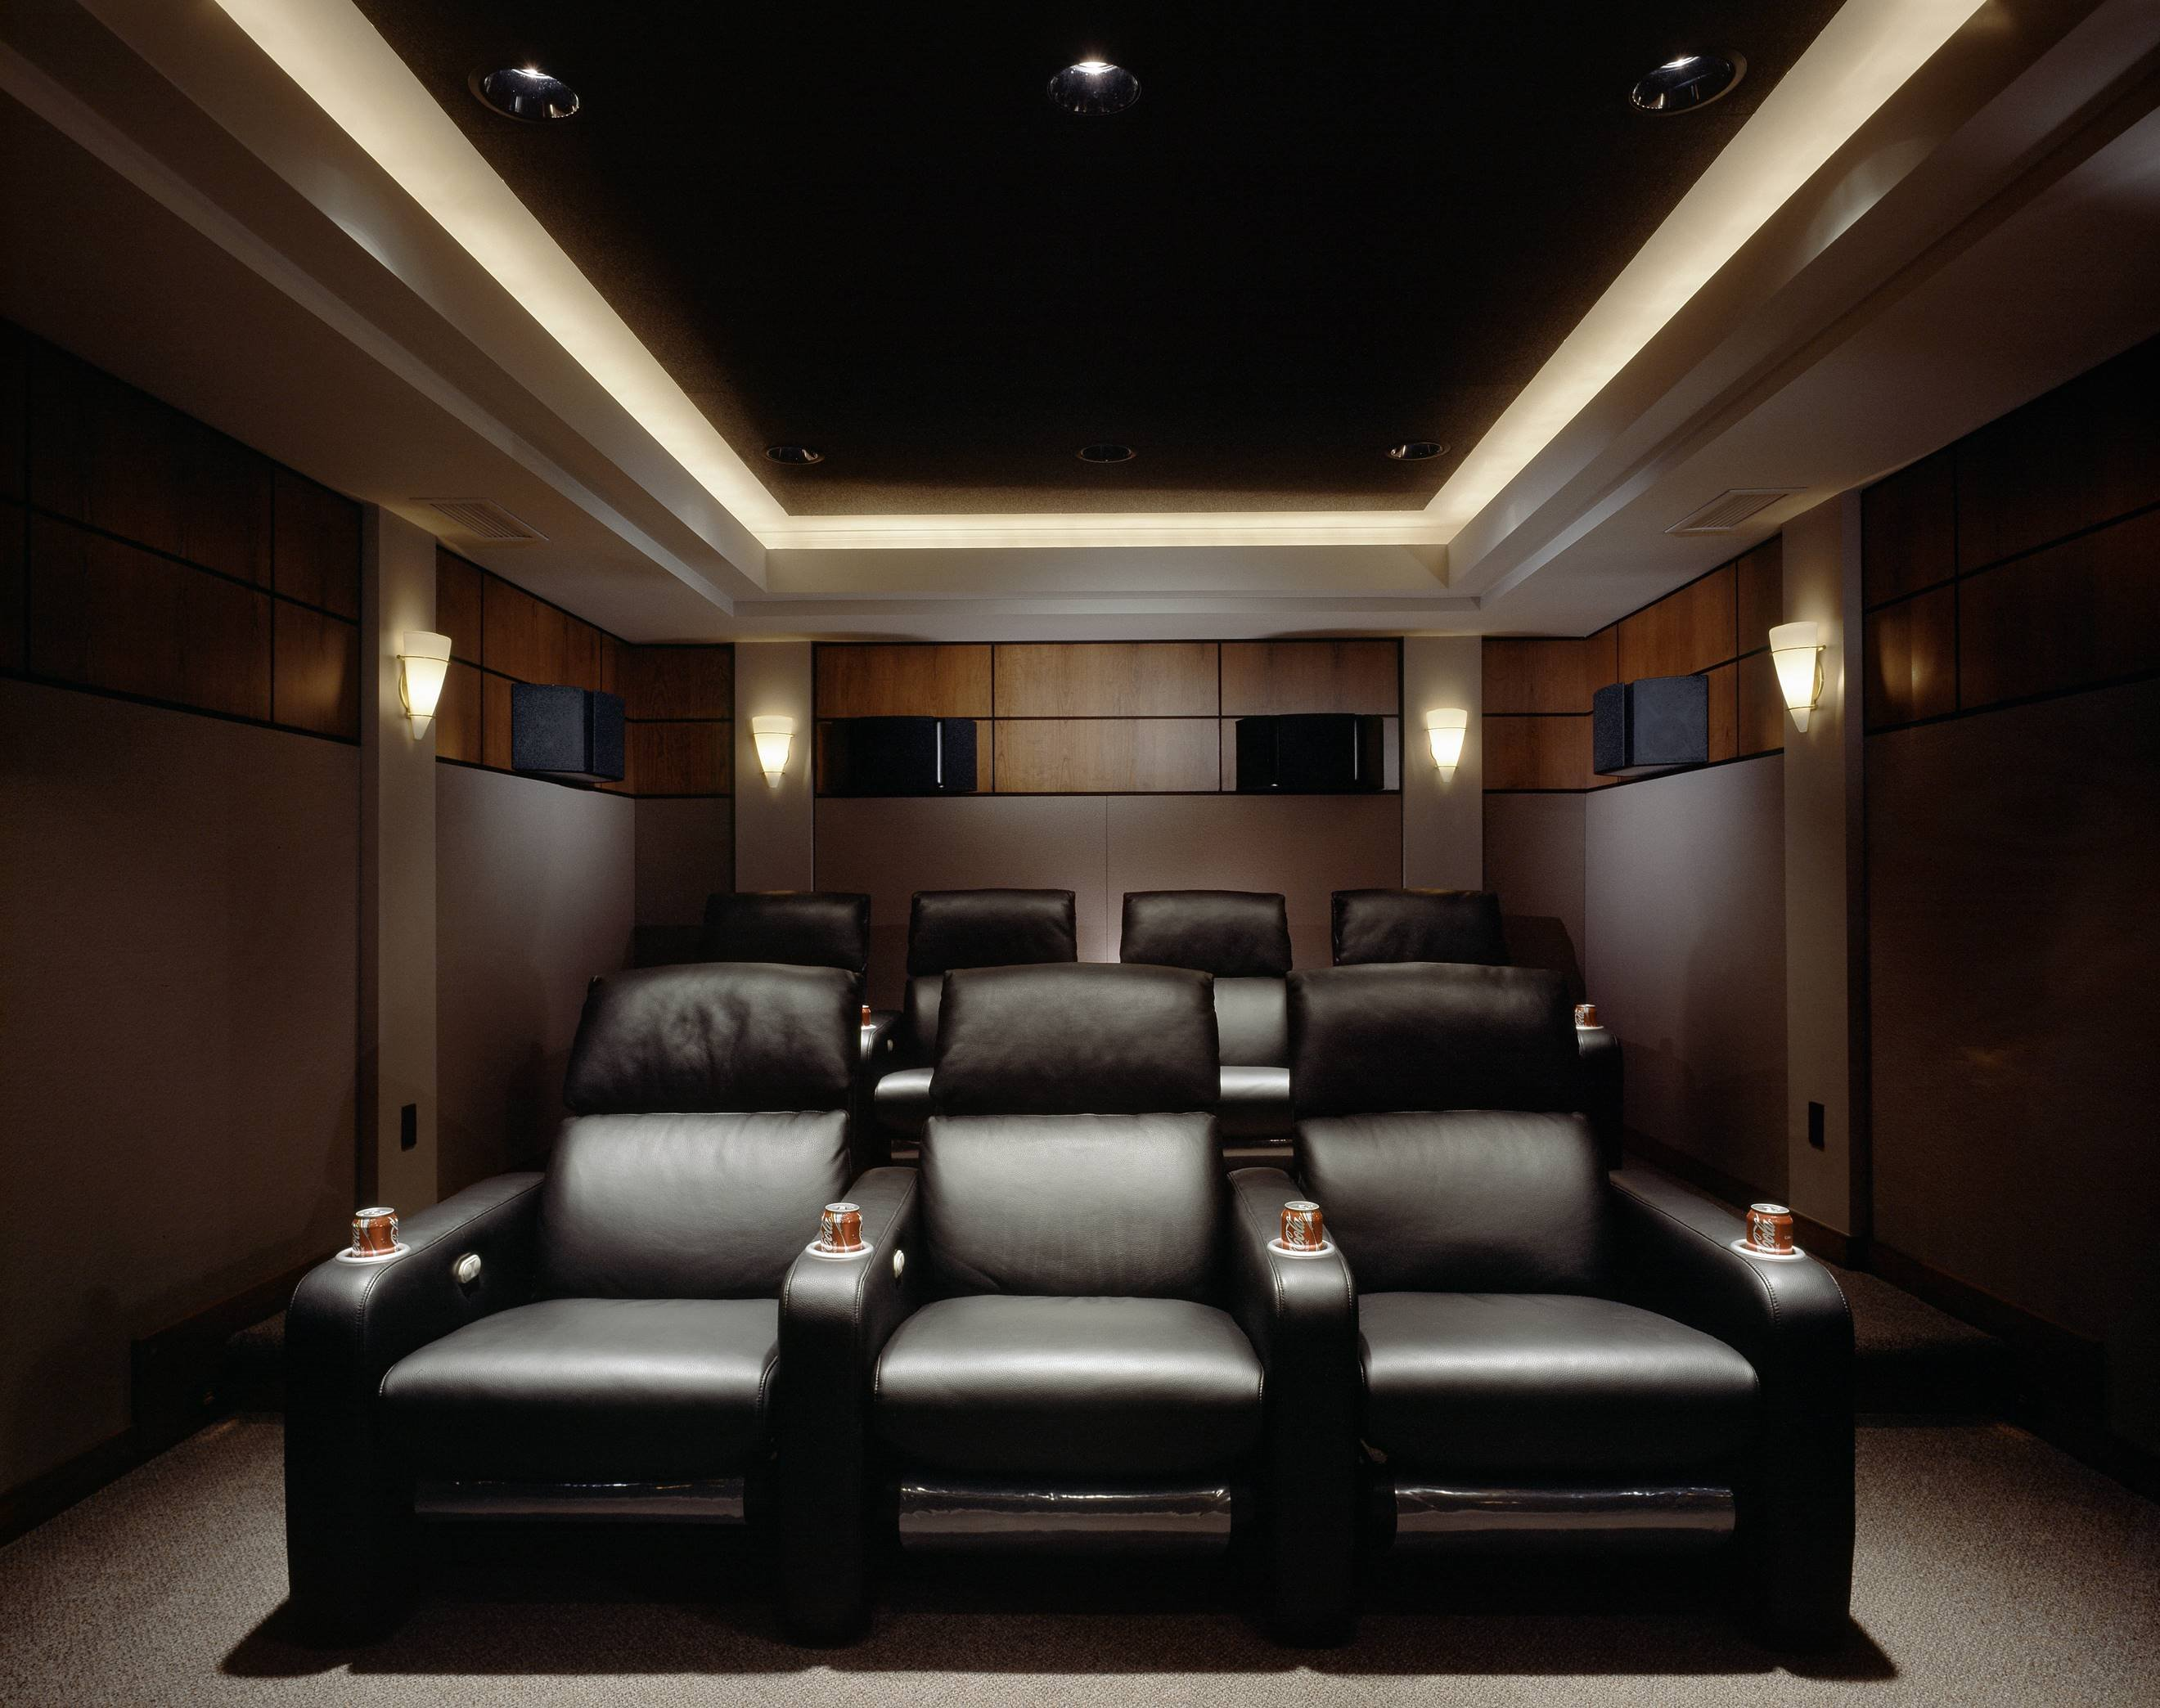 Home Theater Design photo - 8